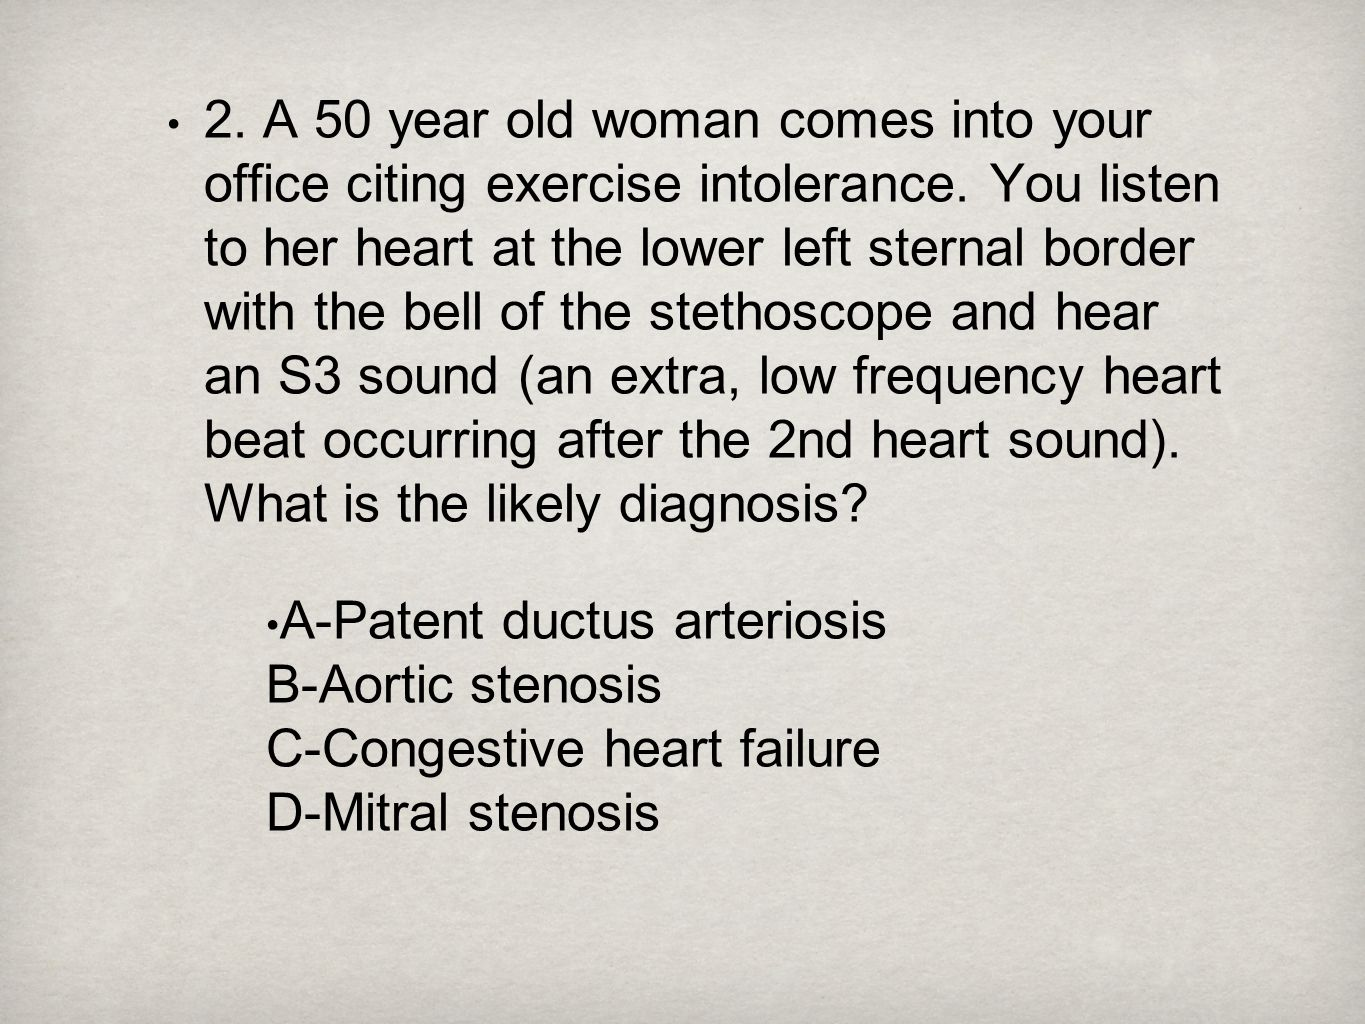 2. A 50 year old woman comes into your office citing exercise intolerance. You listen to her heart at the lower left sternal border with the bell of the stethoscope and hear an S3 sound (an extra, low frequency heart beat occurring after the 2nd heart sound). What is the likely diagnosis